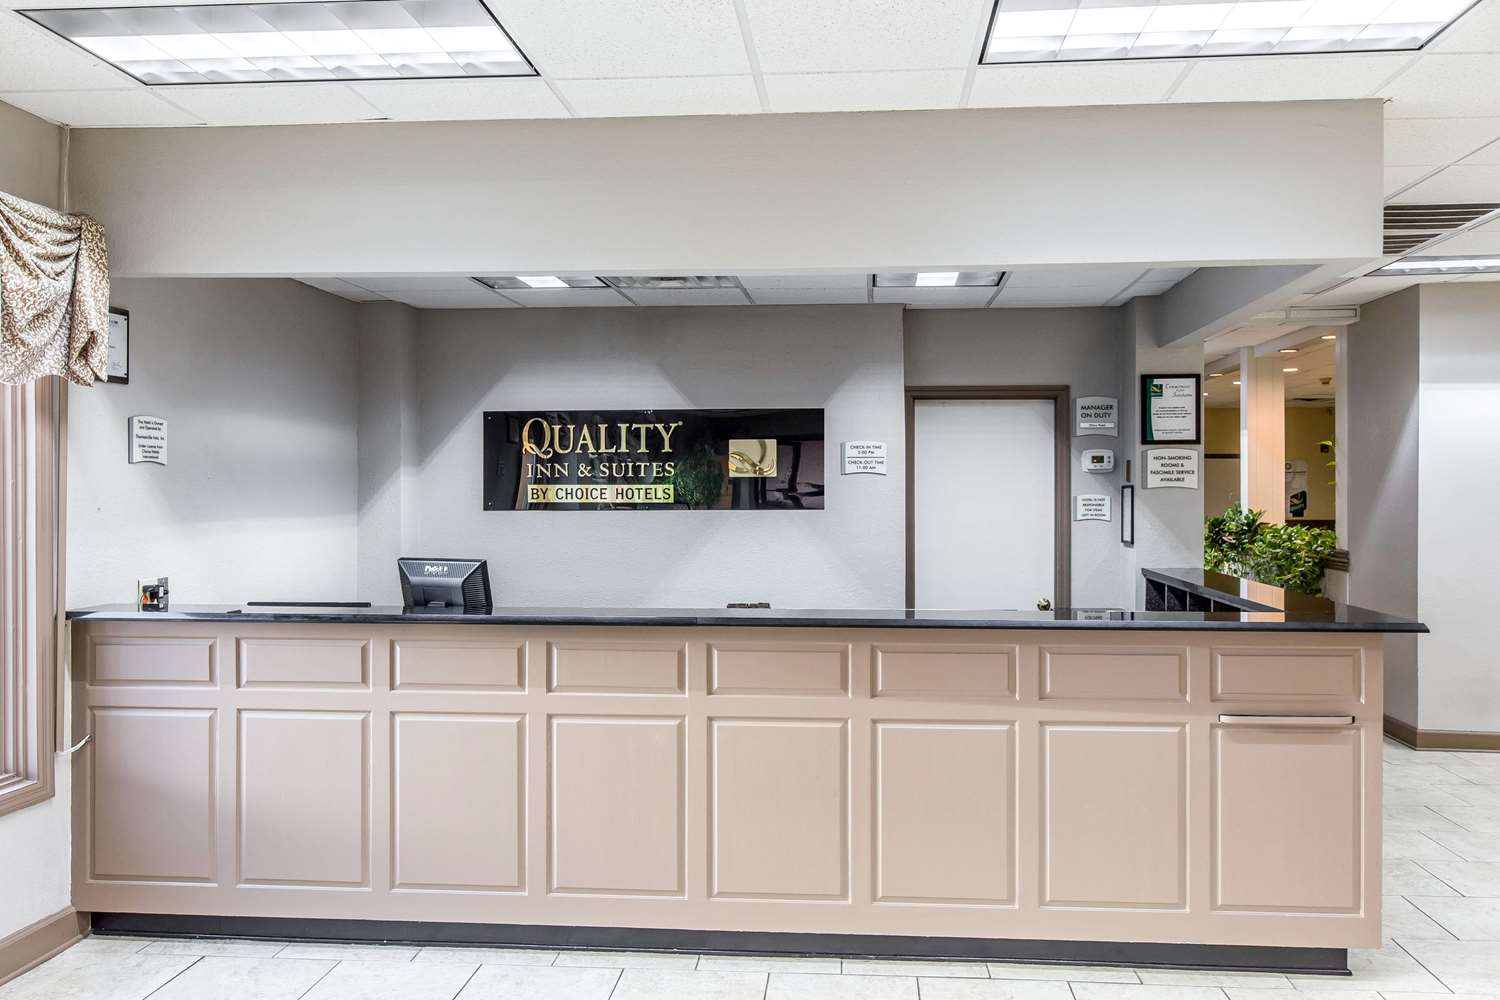 Lobby - Quality Inn & Suites Thomasville